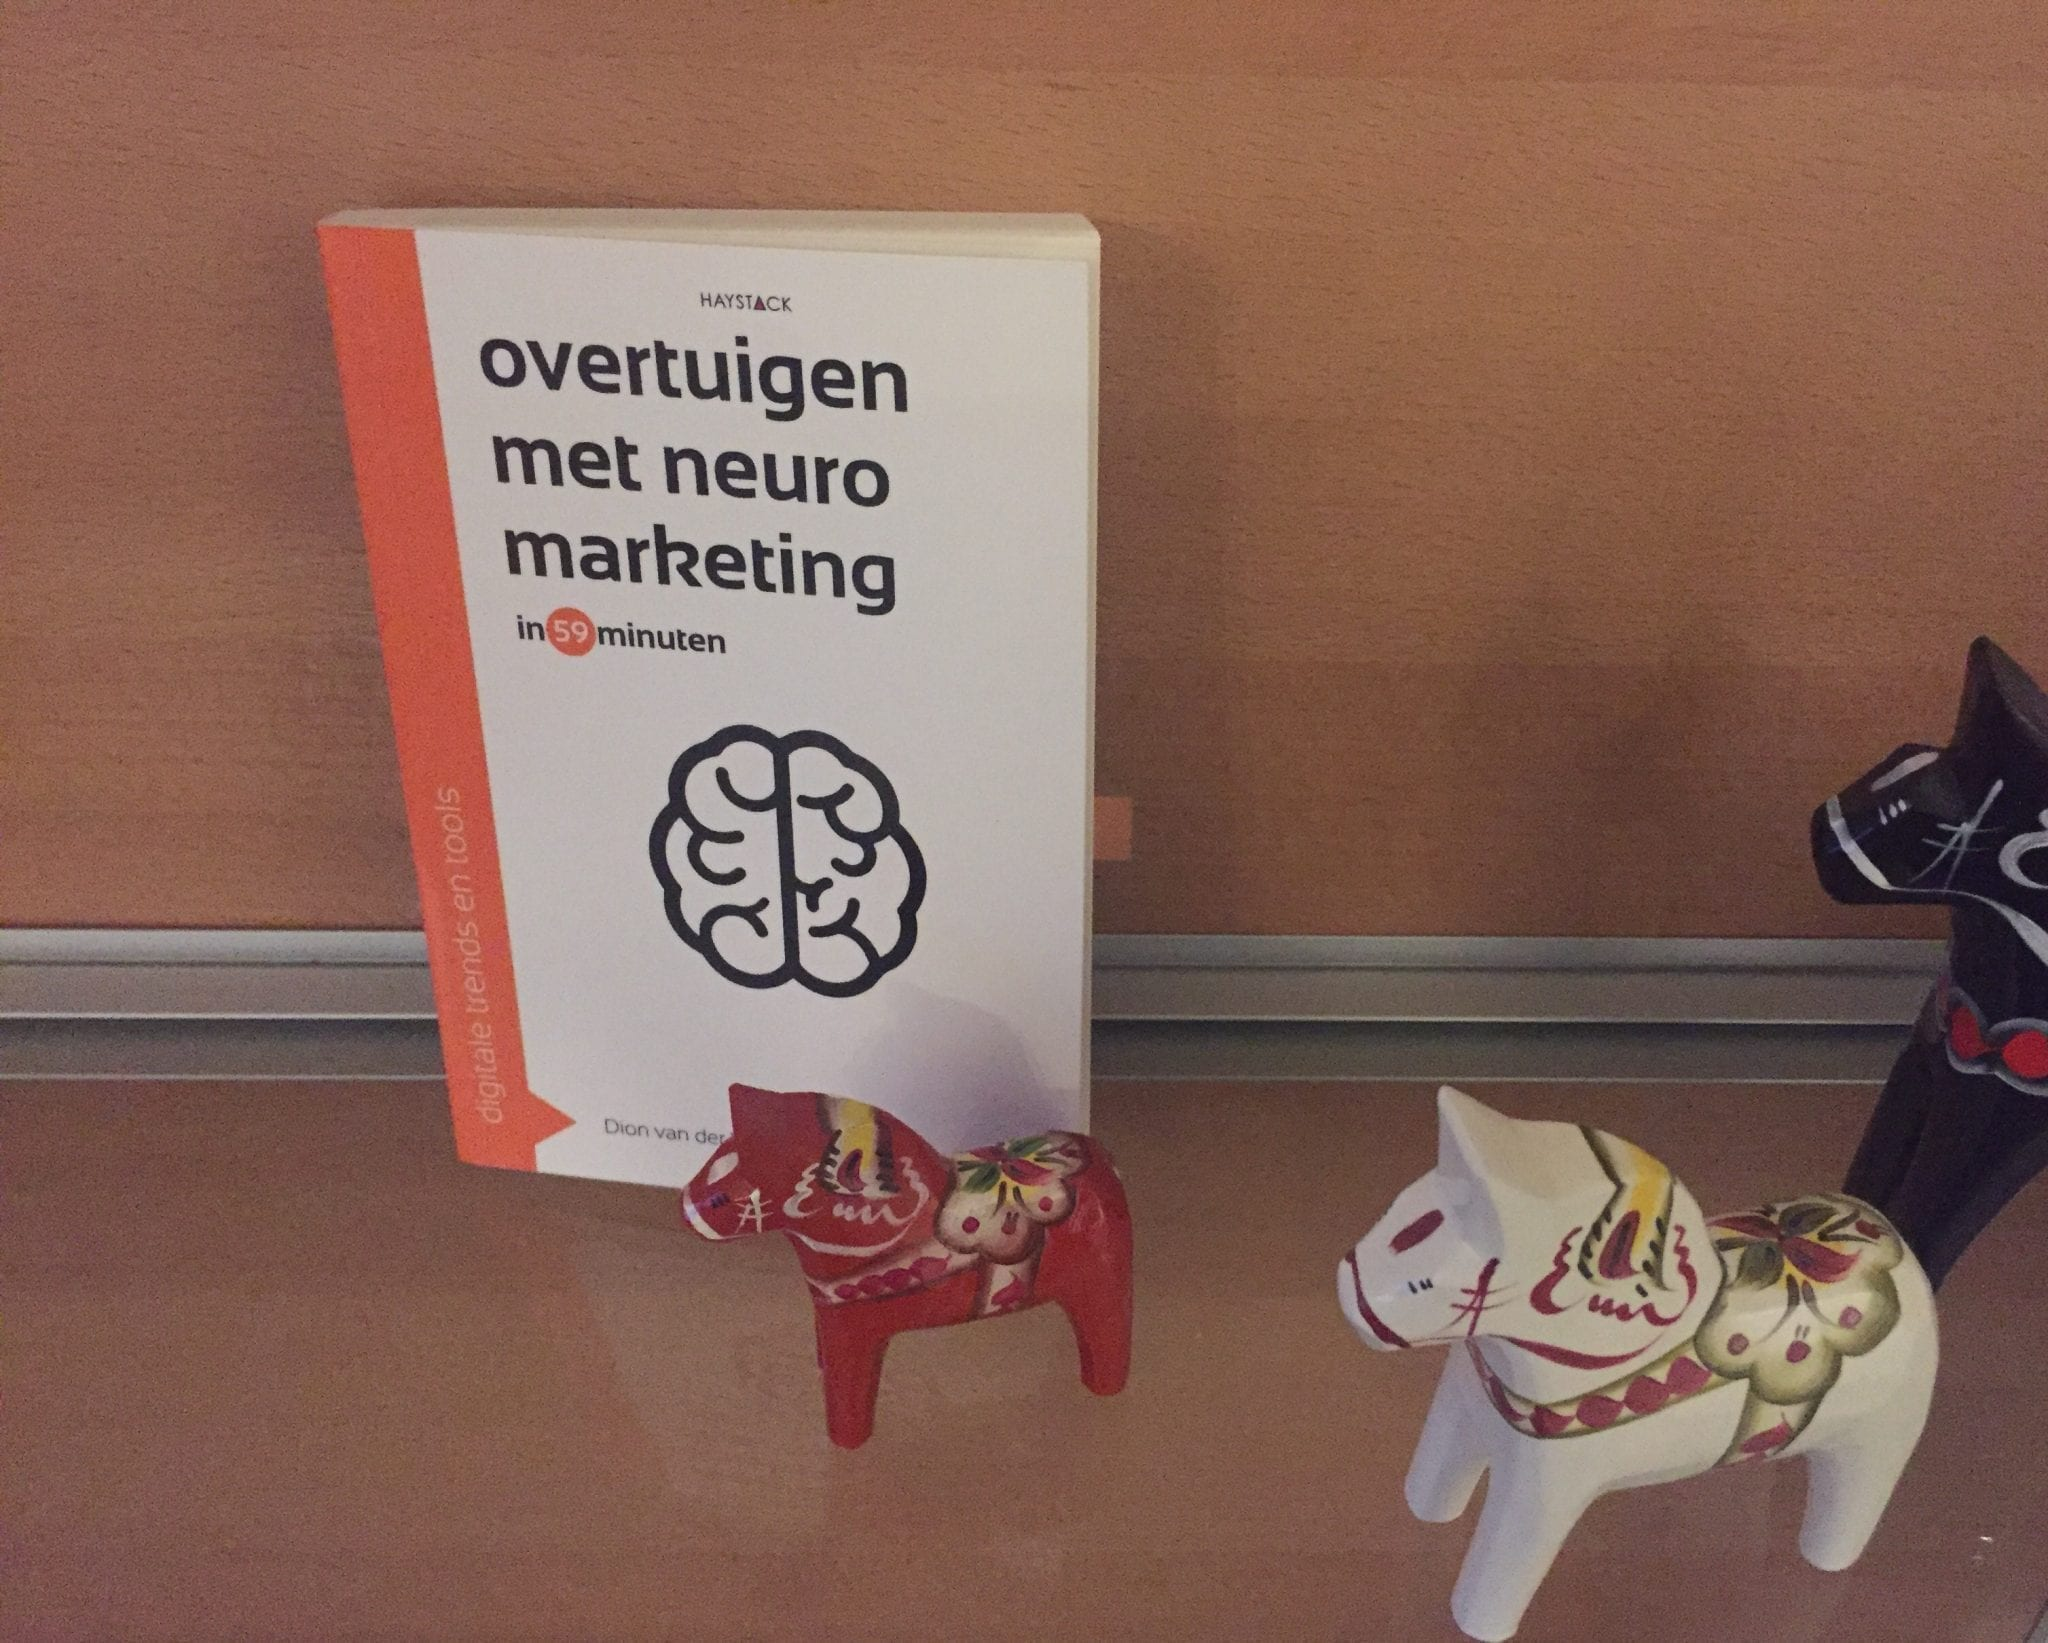 Review: zaaddodende zinnen en neuromarketing